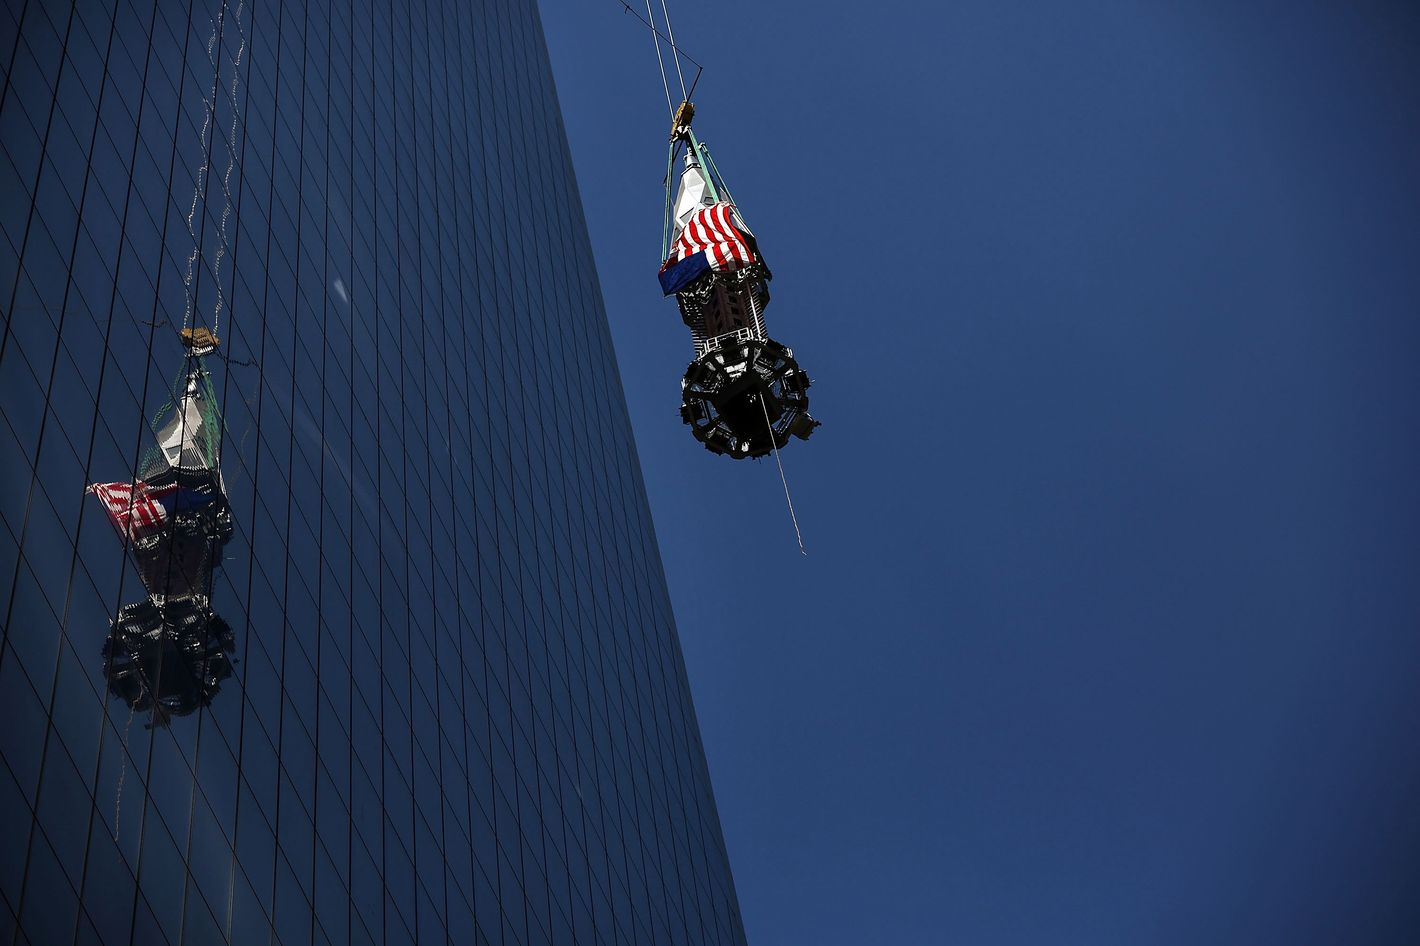 The 408-foot spire is hoisted onto a temporary platform on the top of One World Trade Center on May 2, 2013 in New York City. When bolted into place at a later date, the spire will make One World Trade Center the tallest building in the Western Hemisphere.The raising of the spire, which comes on the second anniversary of the death of Osama bin Laden, will make One World Trade Center 1,776 feet tall. One World Trade Center is built on the site where the September 11, 2001 attacks toppled the original World Trade Center towers.